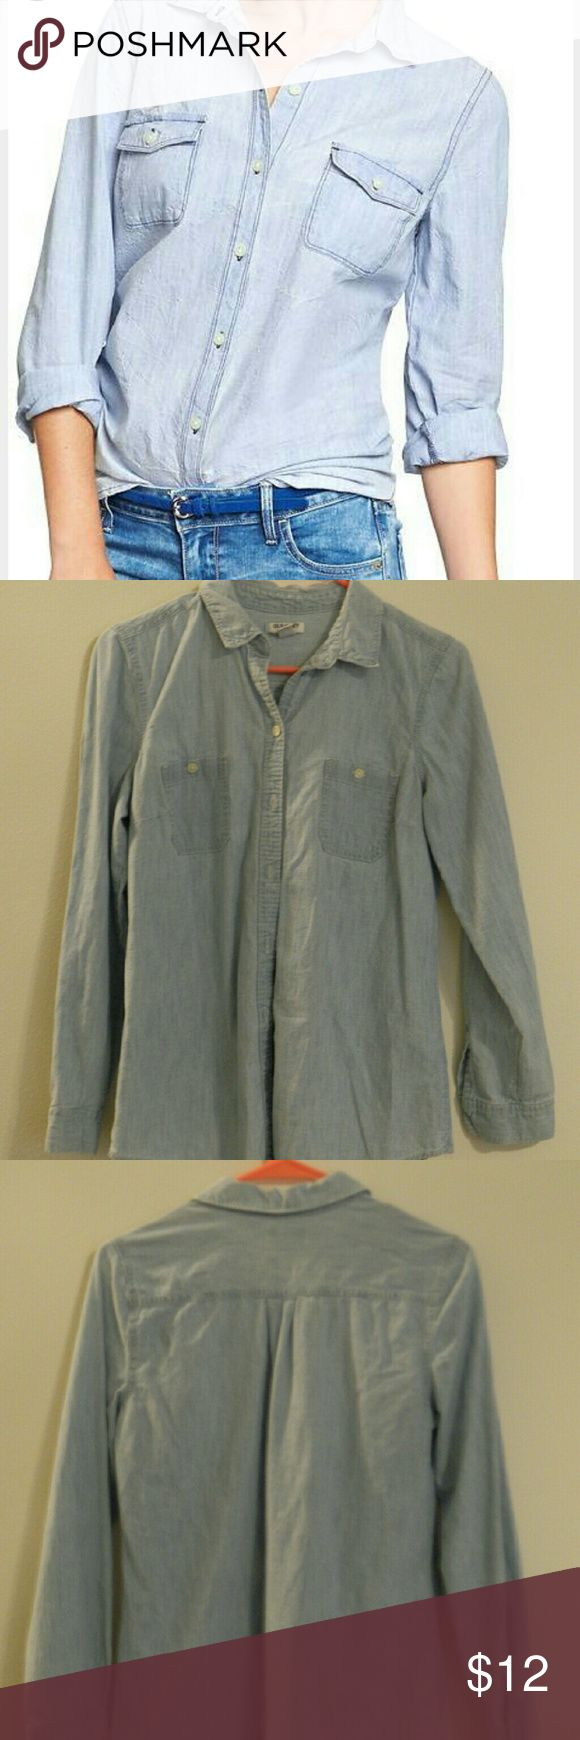 Old Navy Light Chambray Shirt Adorable Old Navy light chambray button up shirt. Excellent overall condition. Old Navy Tops Button Down Shirts